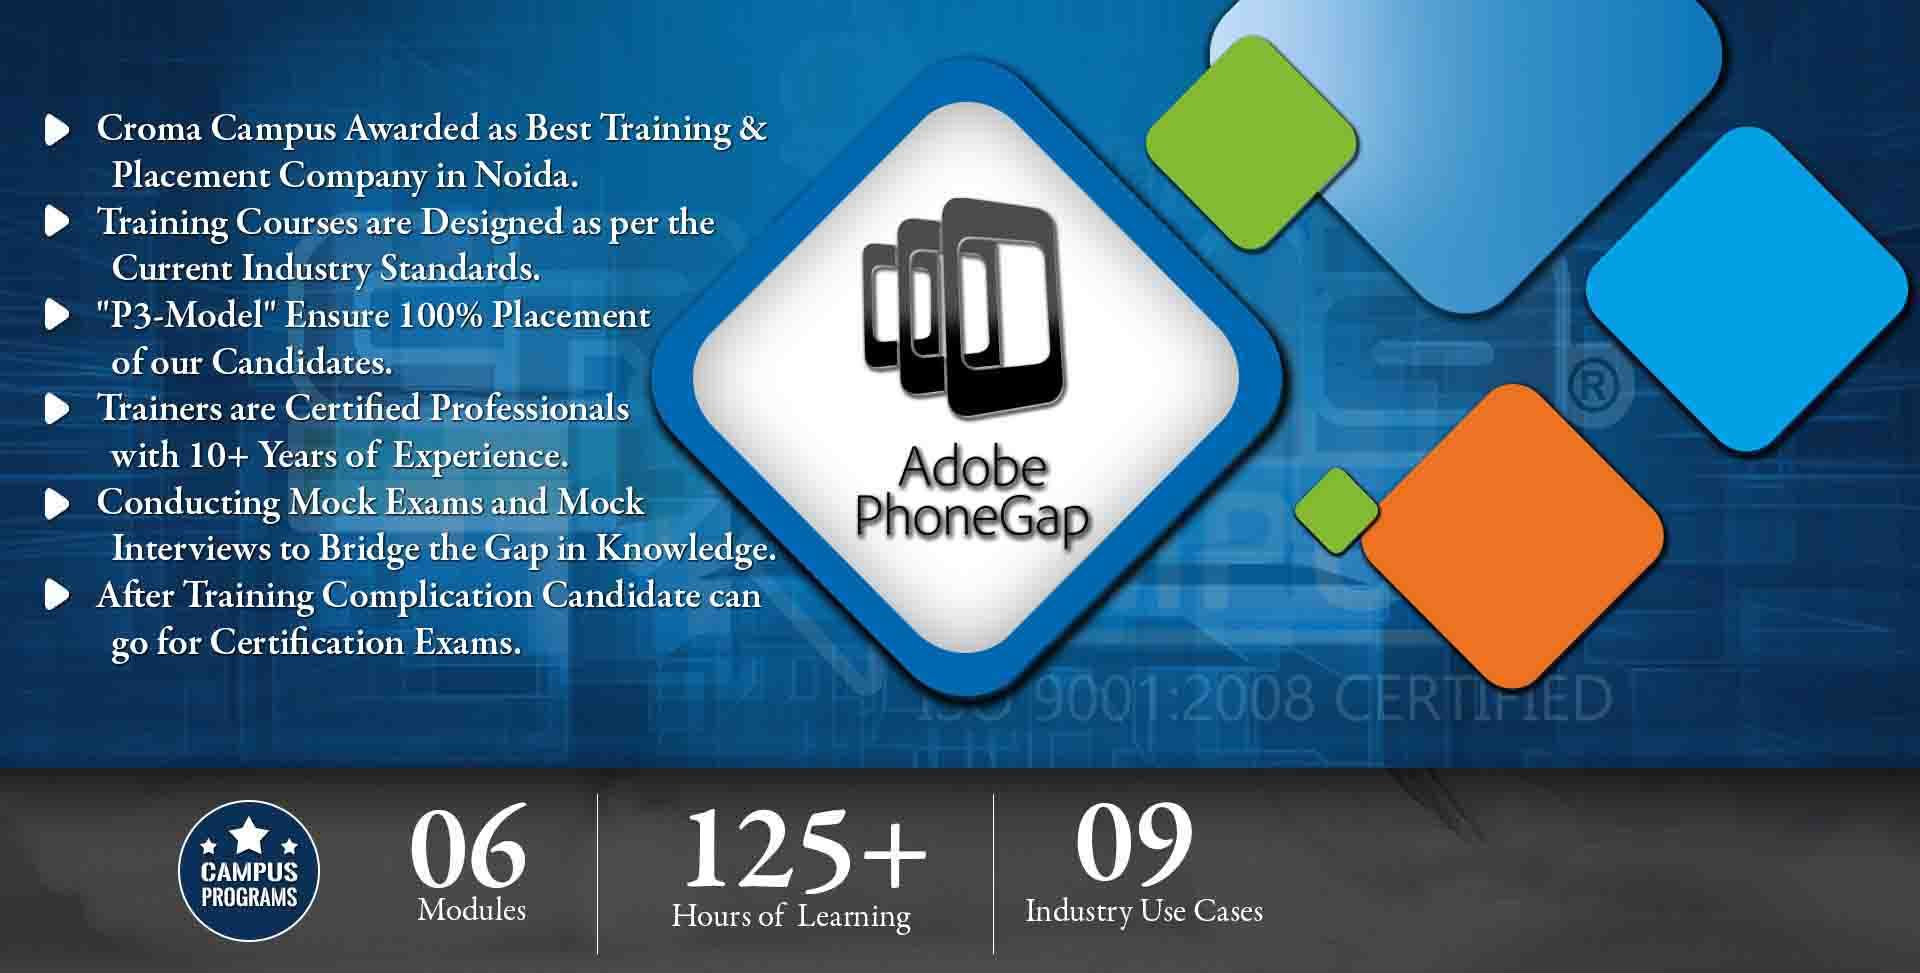 PhoneGap Training in Noida- Croma Campus